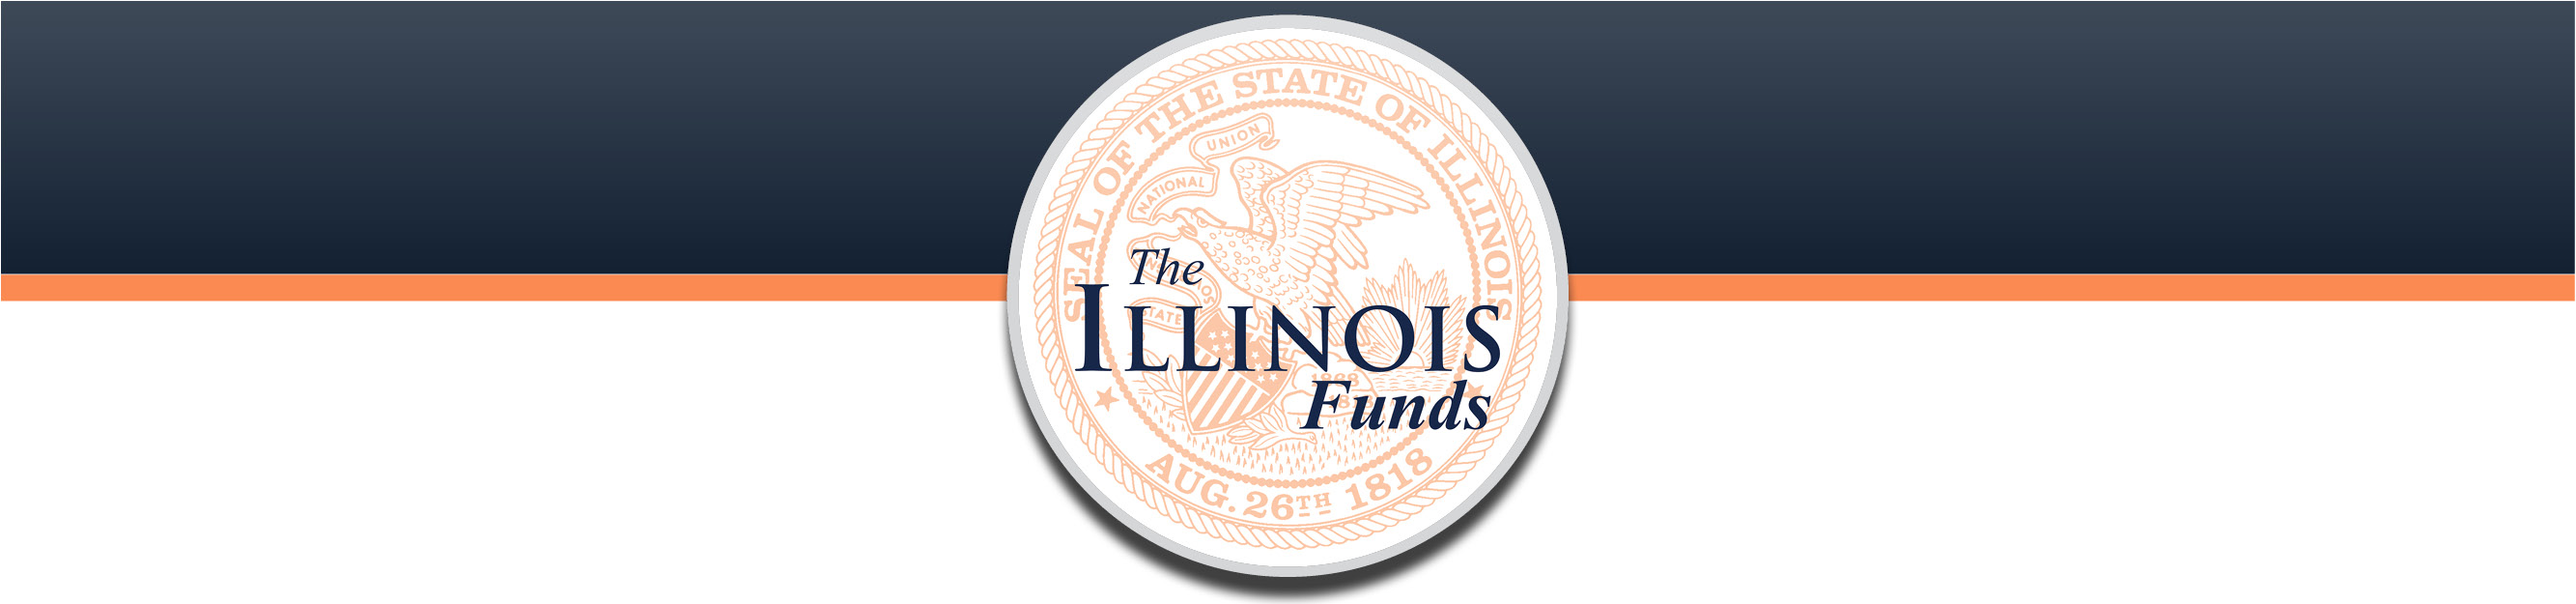 Illinois Funds logo